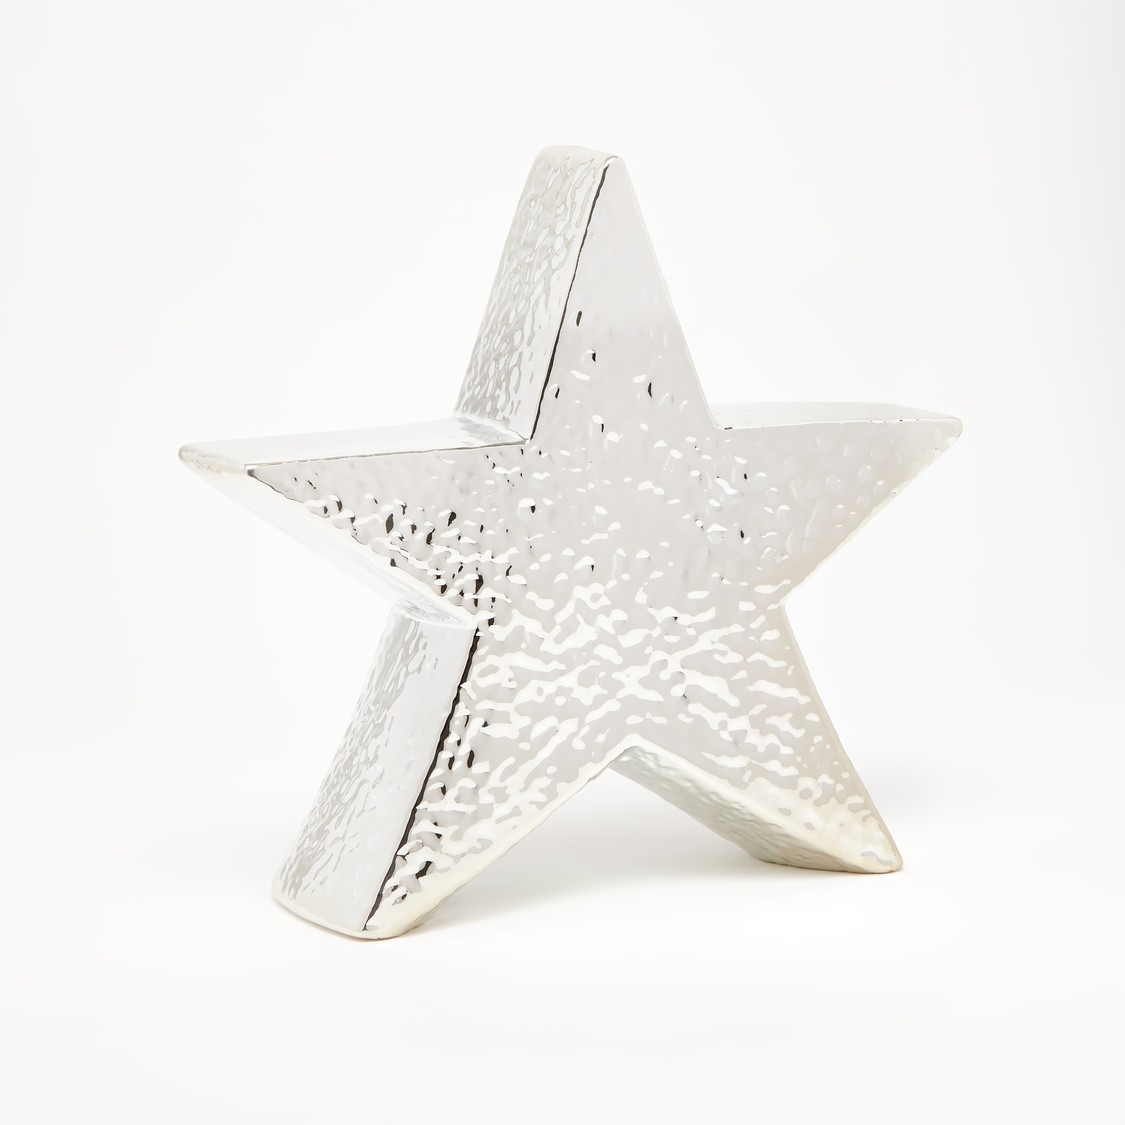 Textured Star Shaped Decor Object